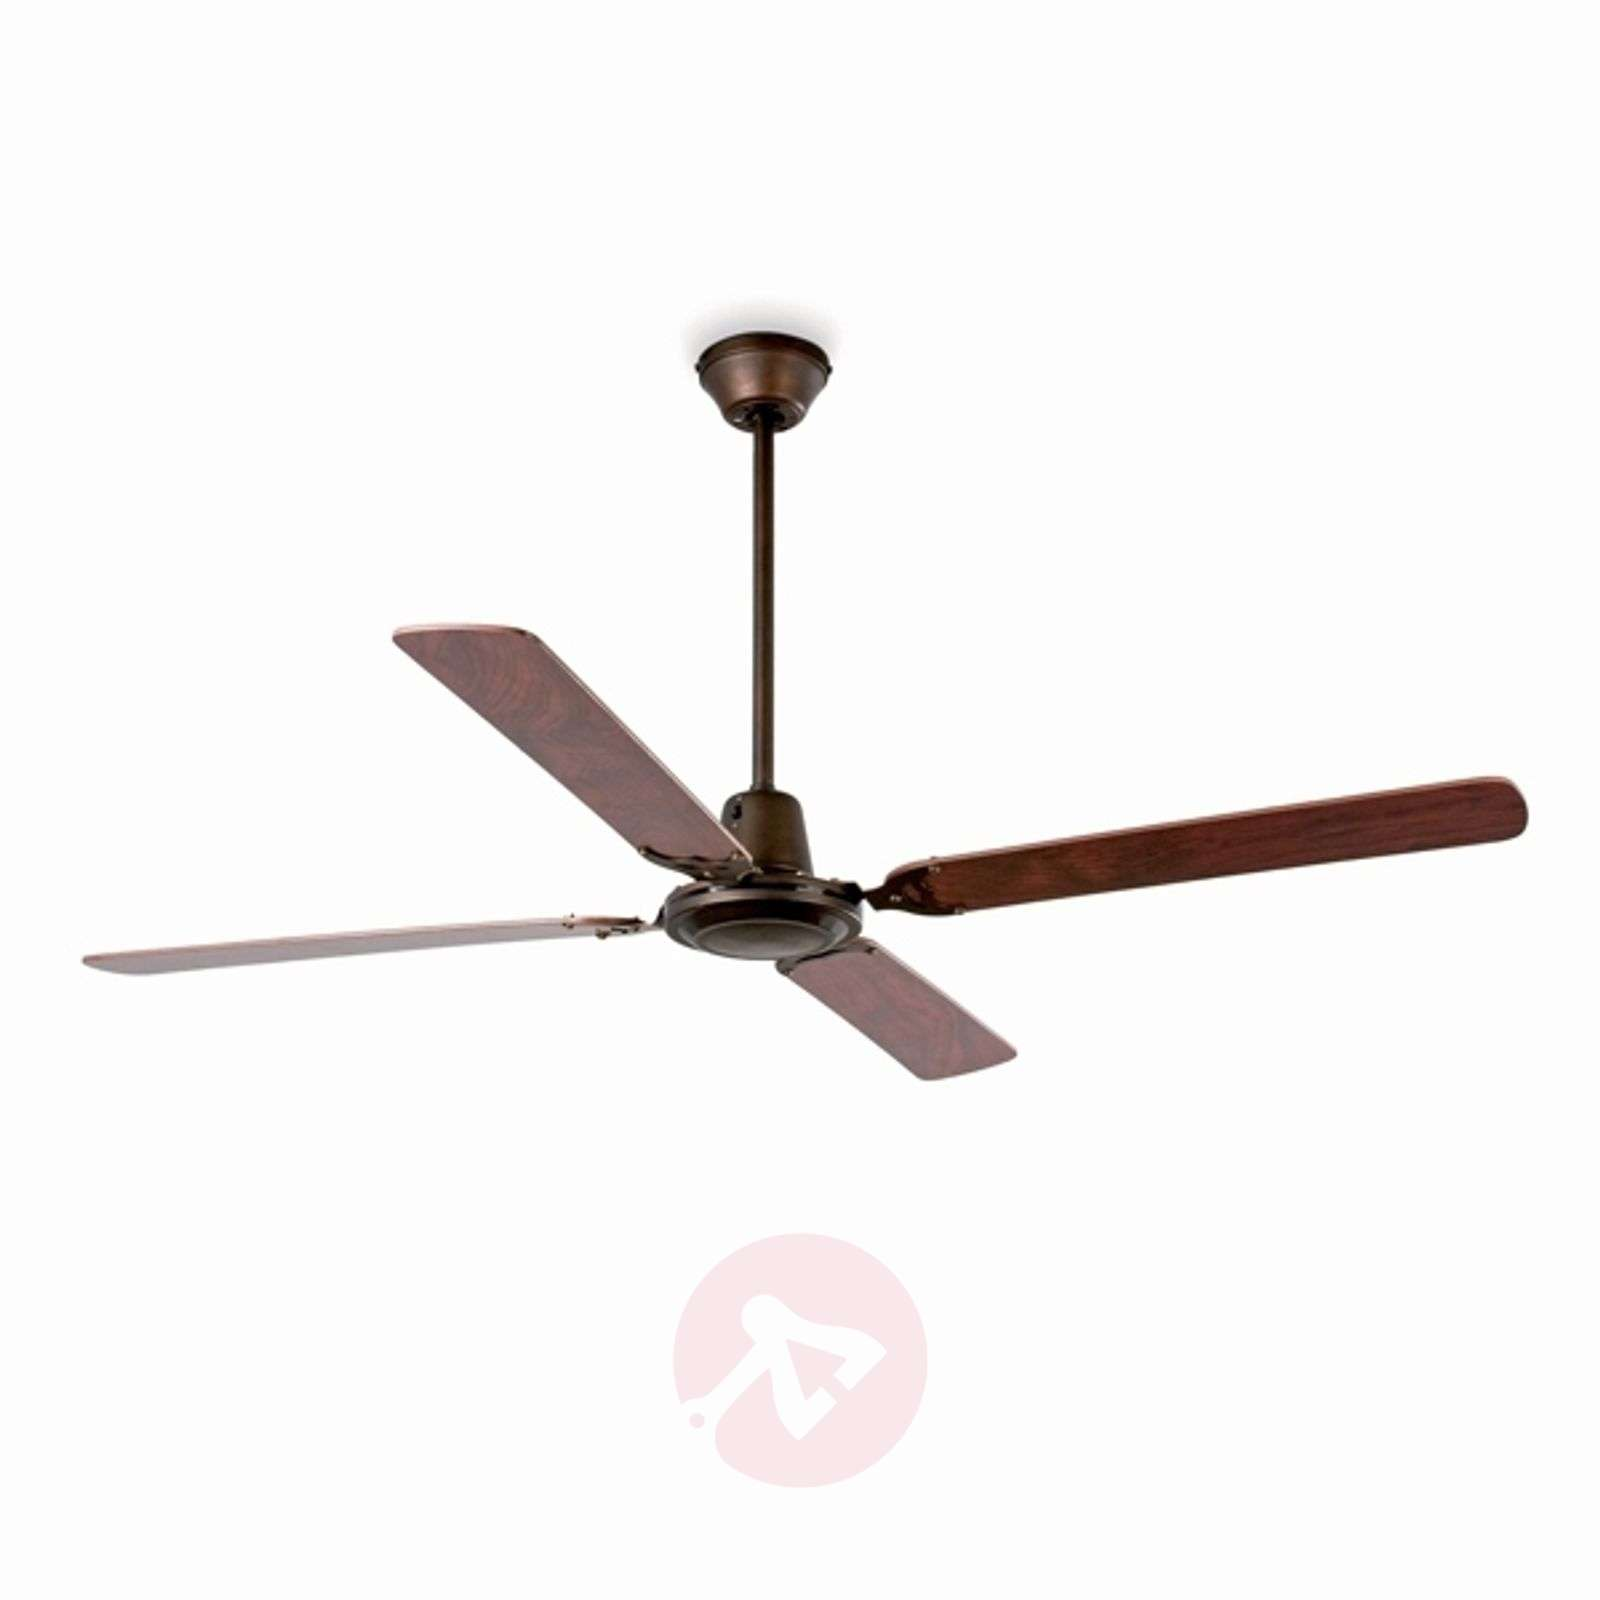 Malvinas Modern Ceiling Fan Brown 3506066 01